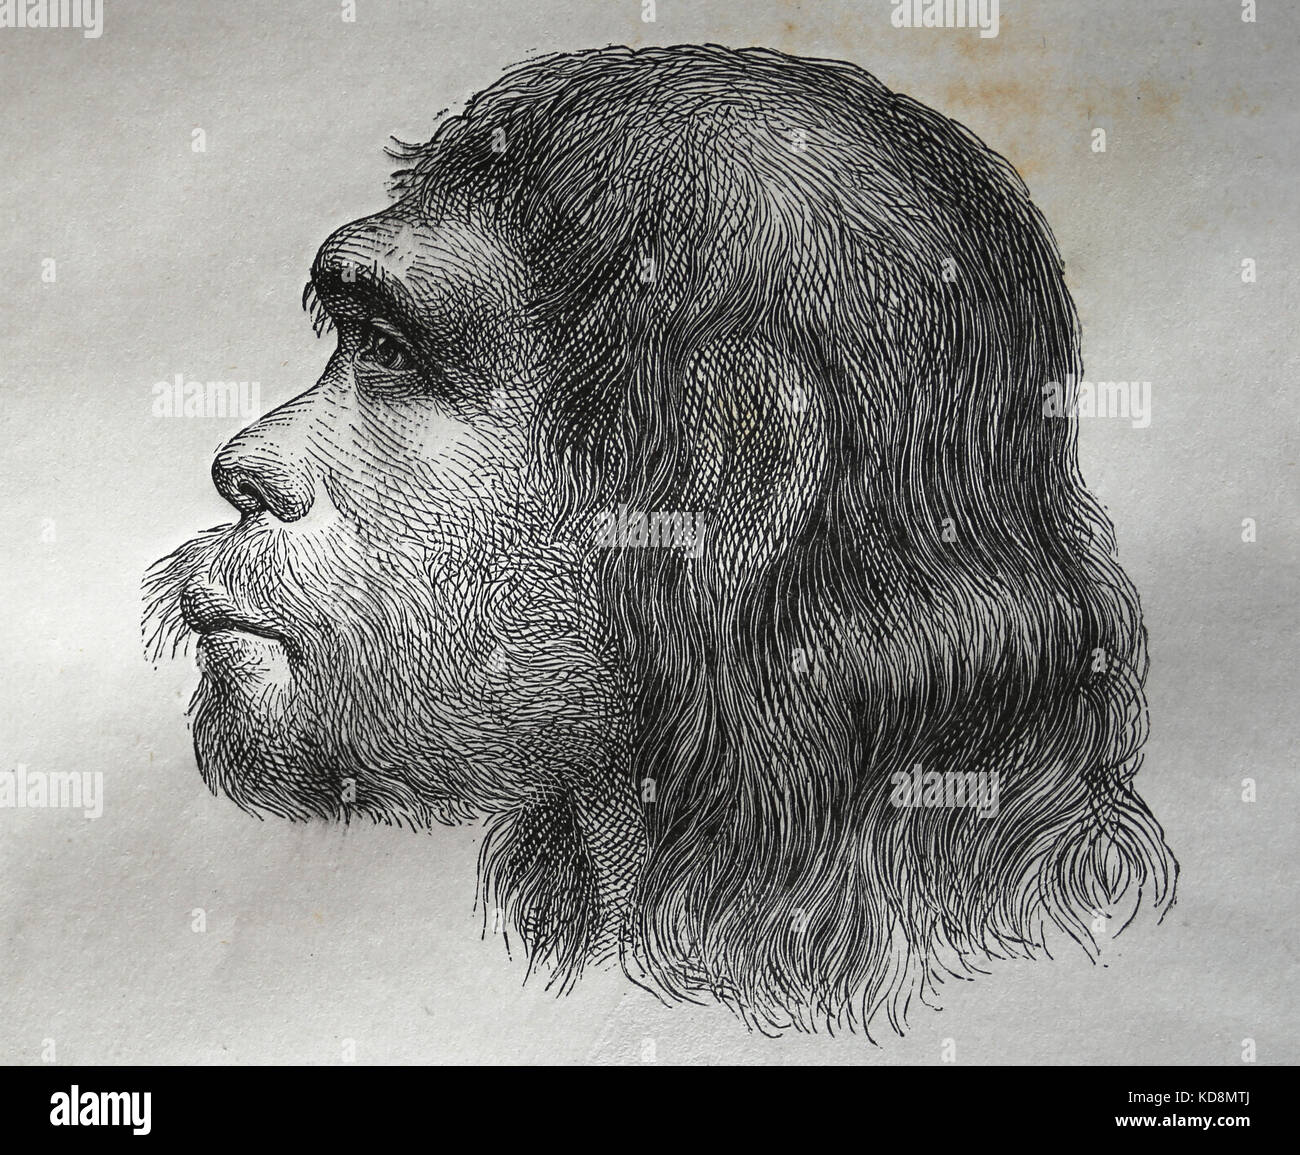 Neanderthal. Archaic humans in the genus Homo. Reconstruction. Engraving, 1883. - Stock Image